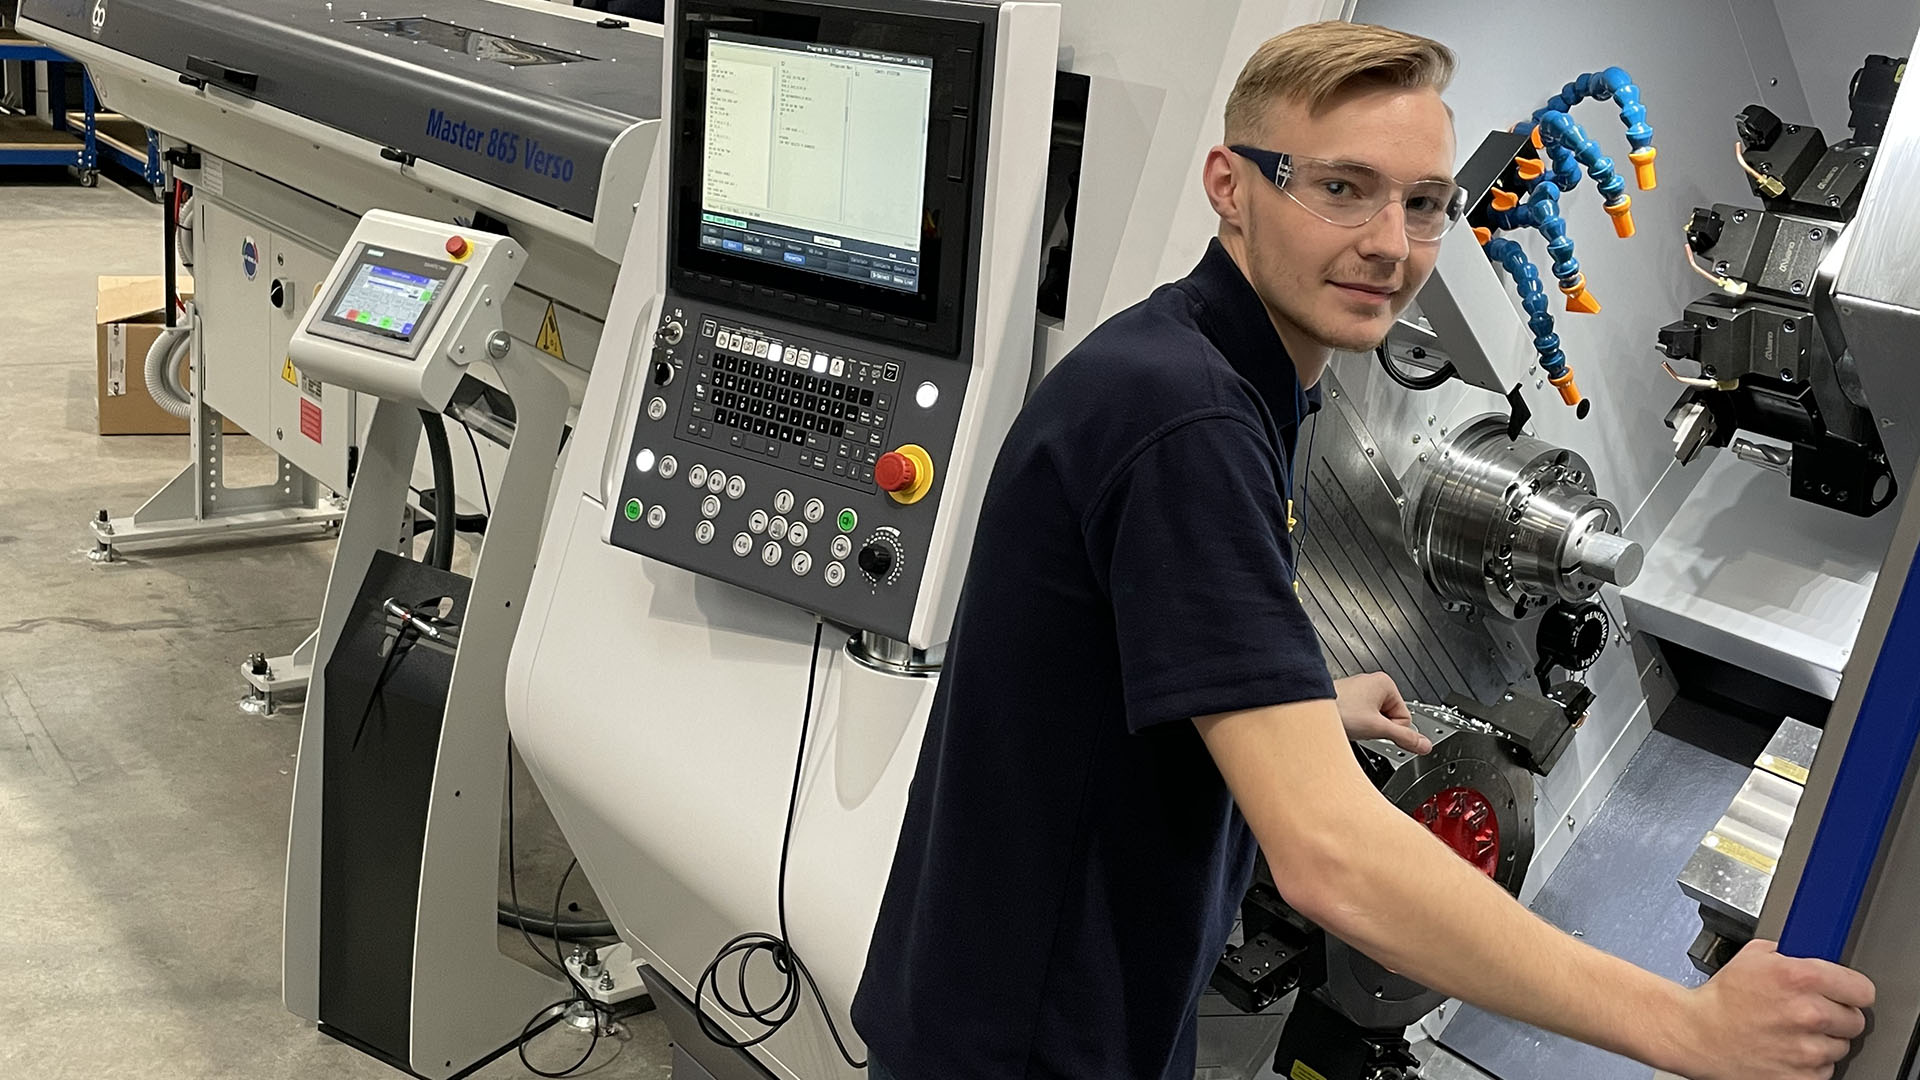 Case study – Ben Bott: The Bradford Manufacturing Weeks pupil who became 2021 Apprentice of the Year